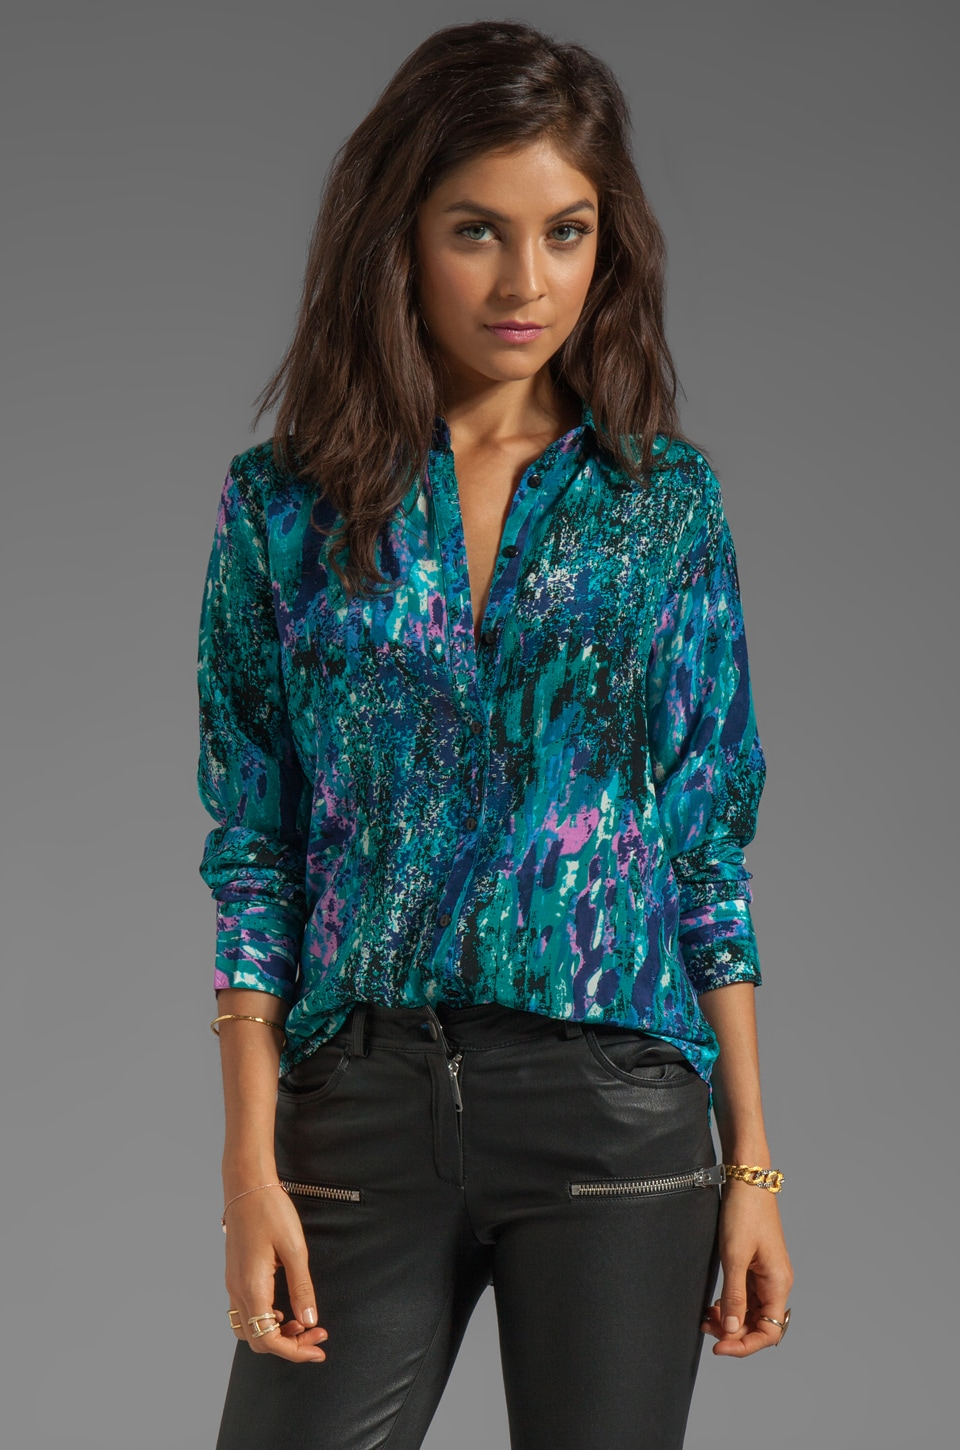 Tolani Valerie Top in Turquoise